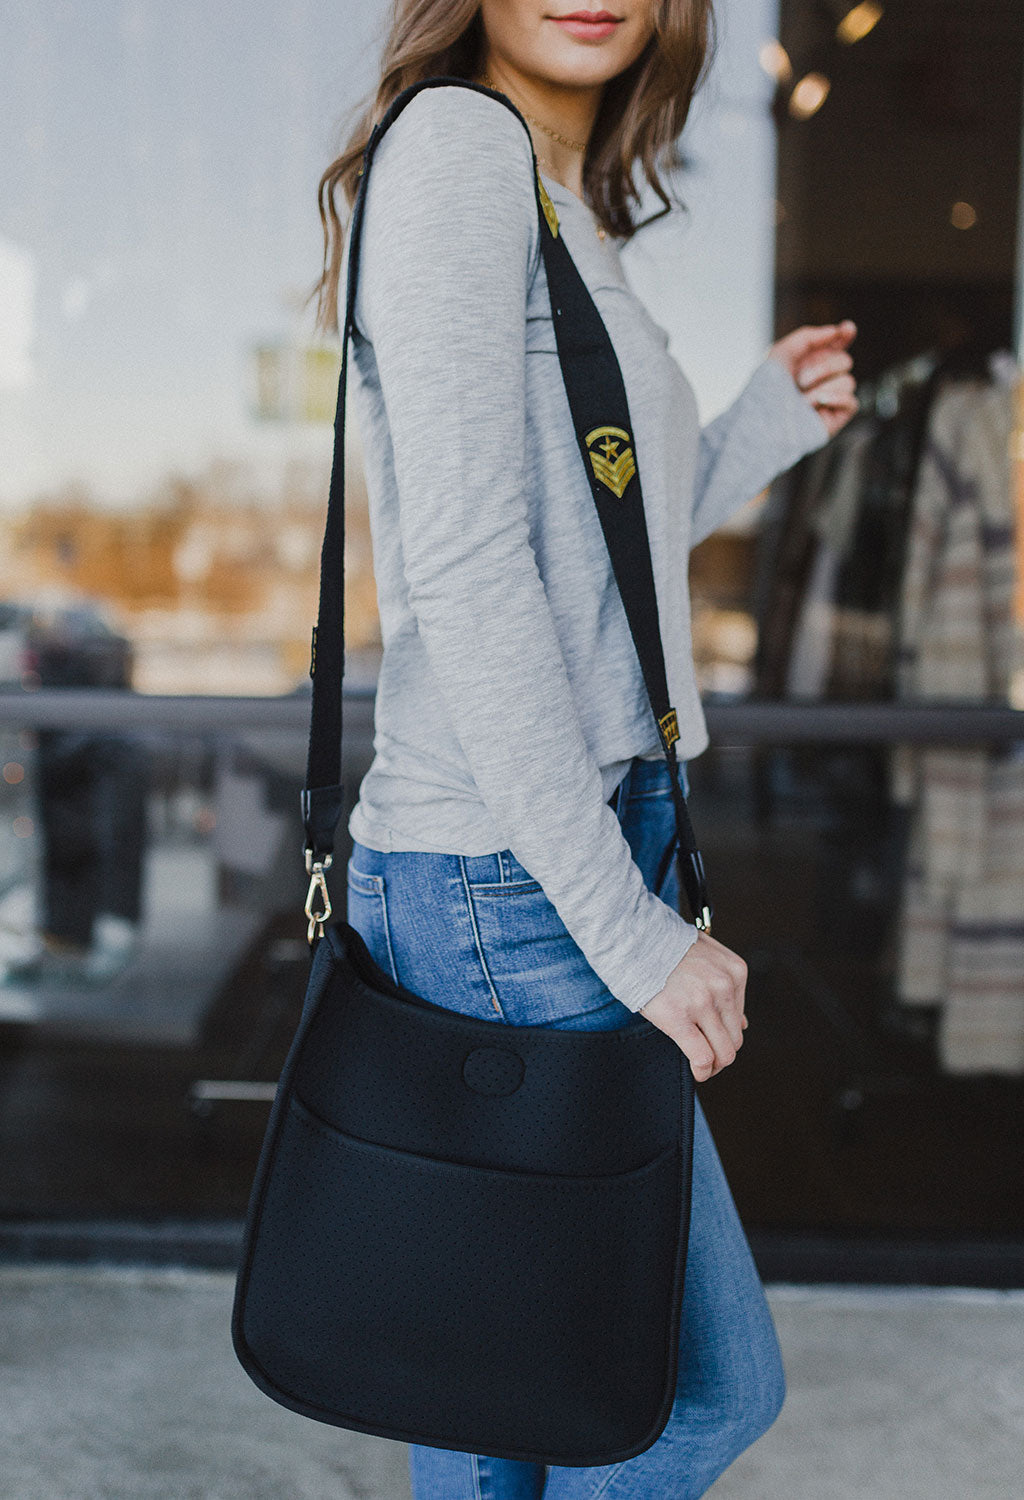 Black Neoprene Messenger Tote